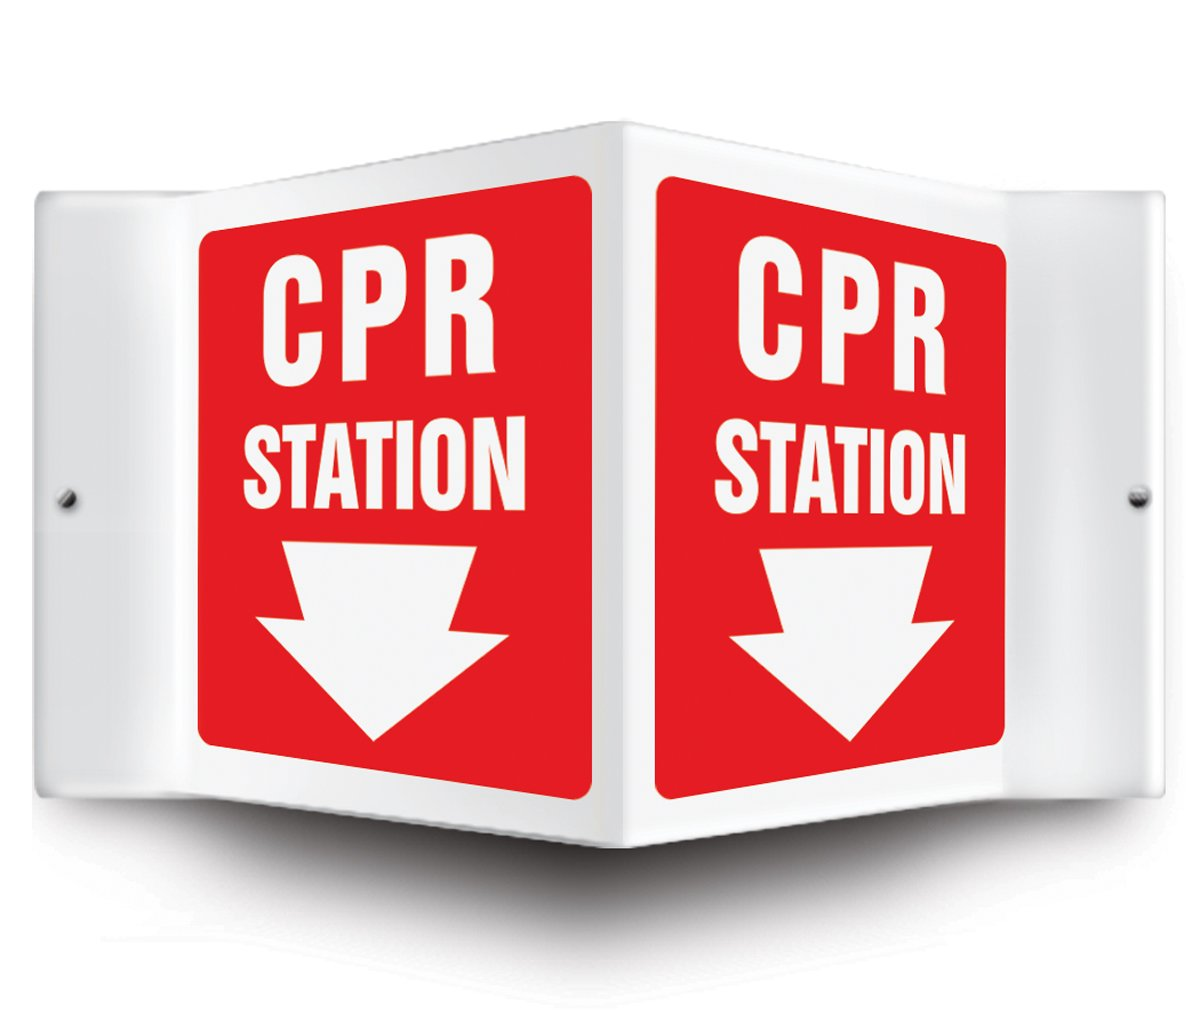 ARROW ARROW Pre-Drilled Mounting Holes 6 x 5 Panel LegendCPR STATION 0.10 Thick High-Impact Plastic 6 x 5 Panel 0.10 Thick High-Impact Plastic White on Red LegendCPR STATION Accuform Signs PSP604 Projection Sign 3D